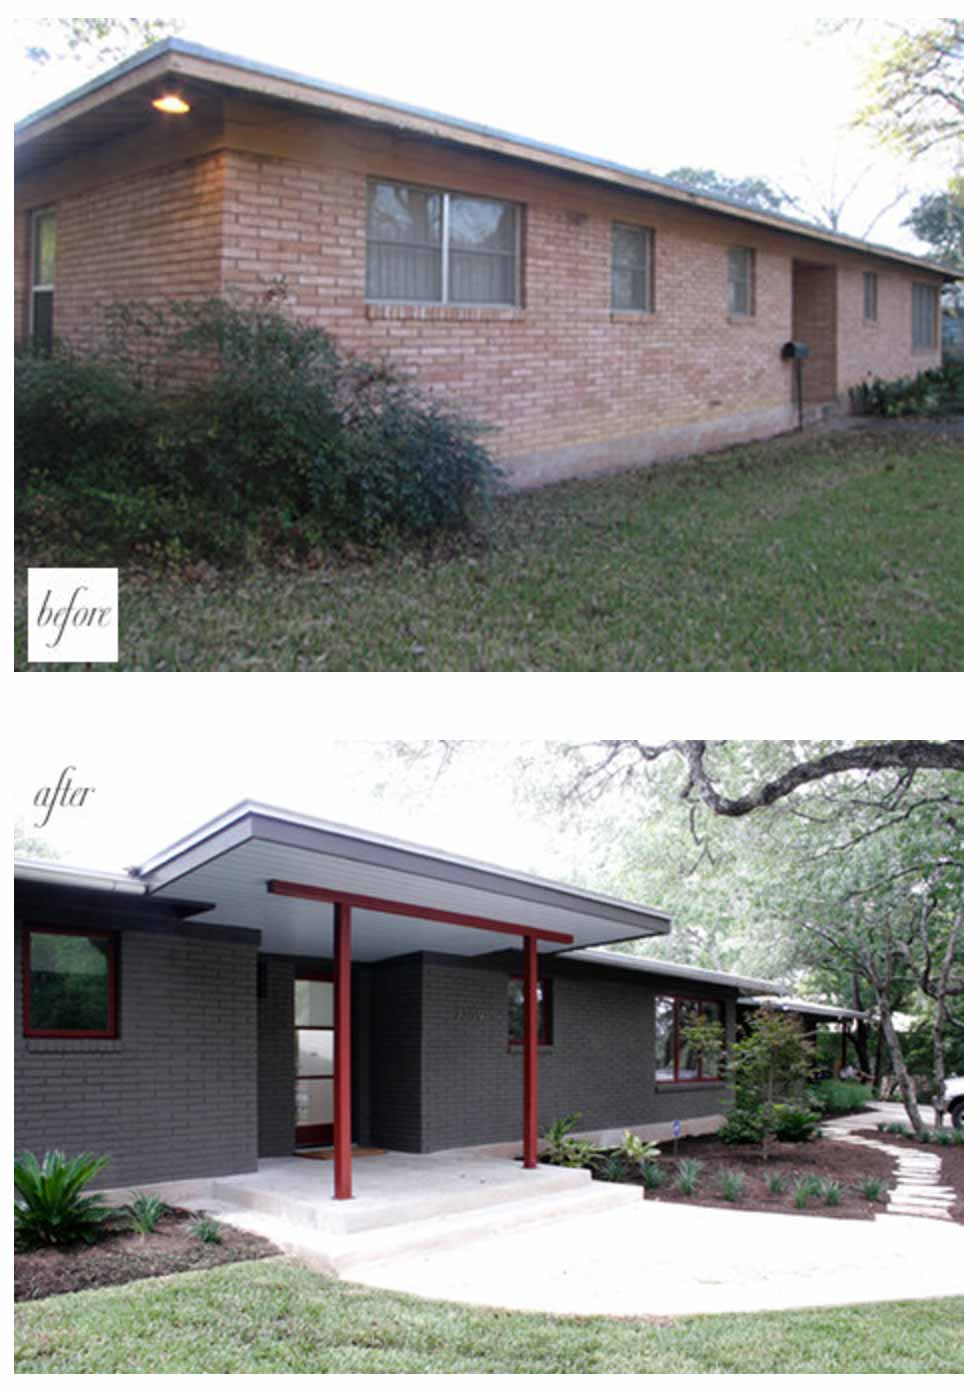 Simple renovation ideas to transform a charmless brick home for 70s house exterior makeover australia